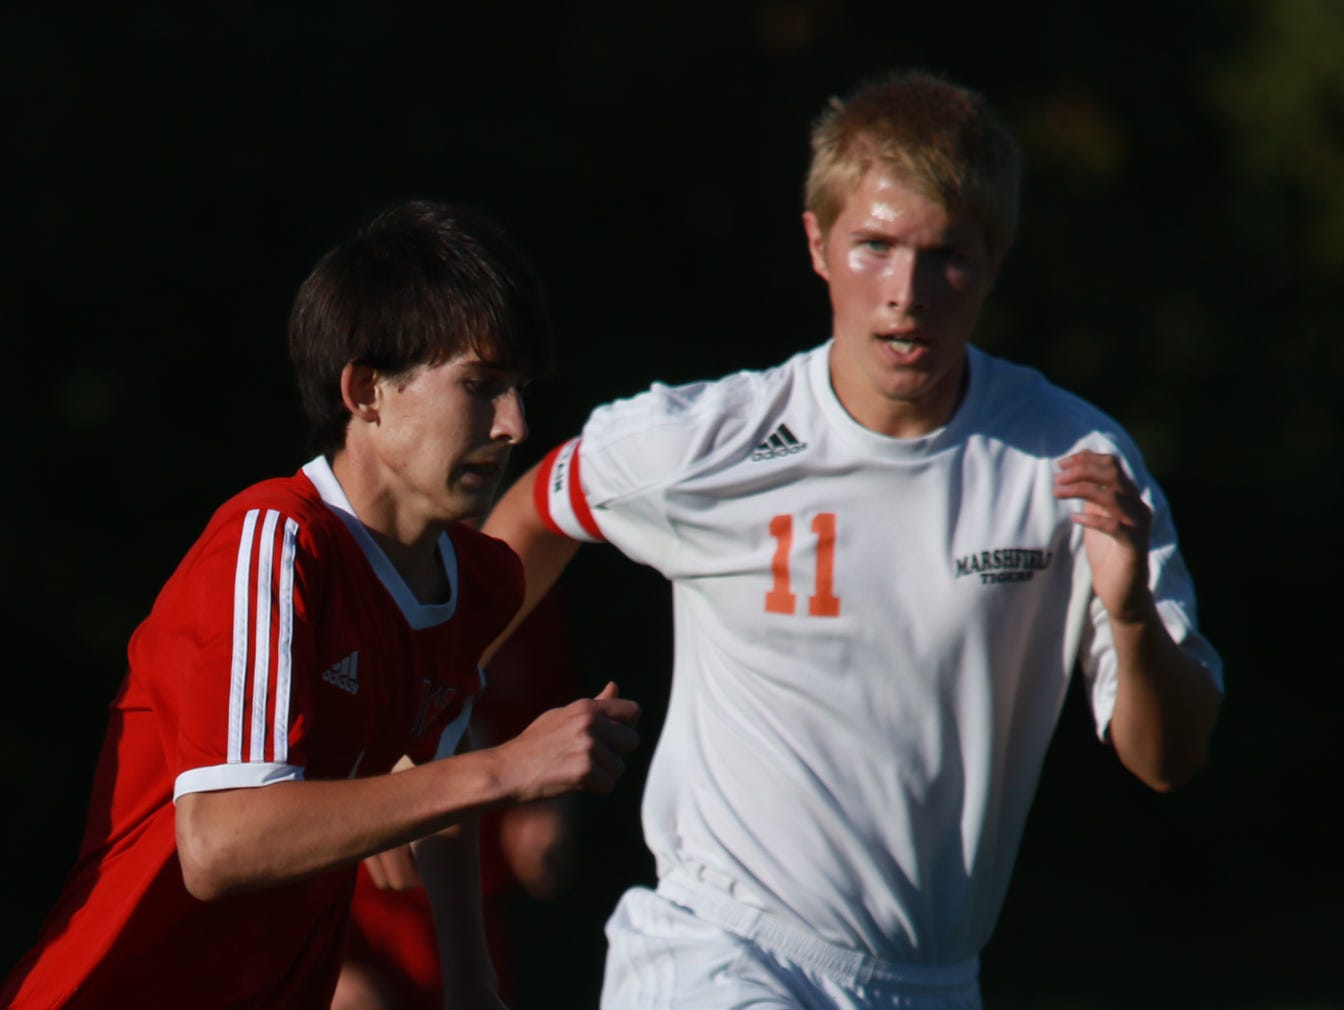 Marshfield's Leo Steiner is a captain on the boys soccer team this fall and is an Oregon transplant.